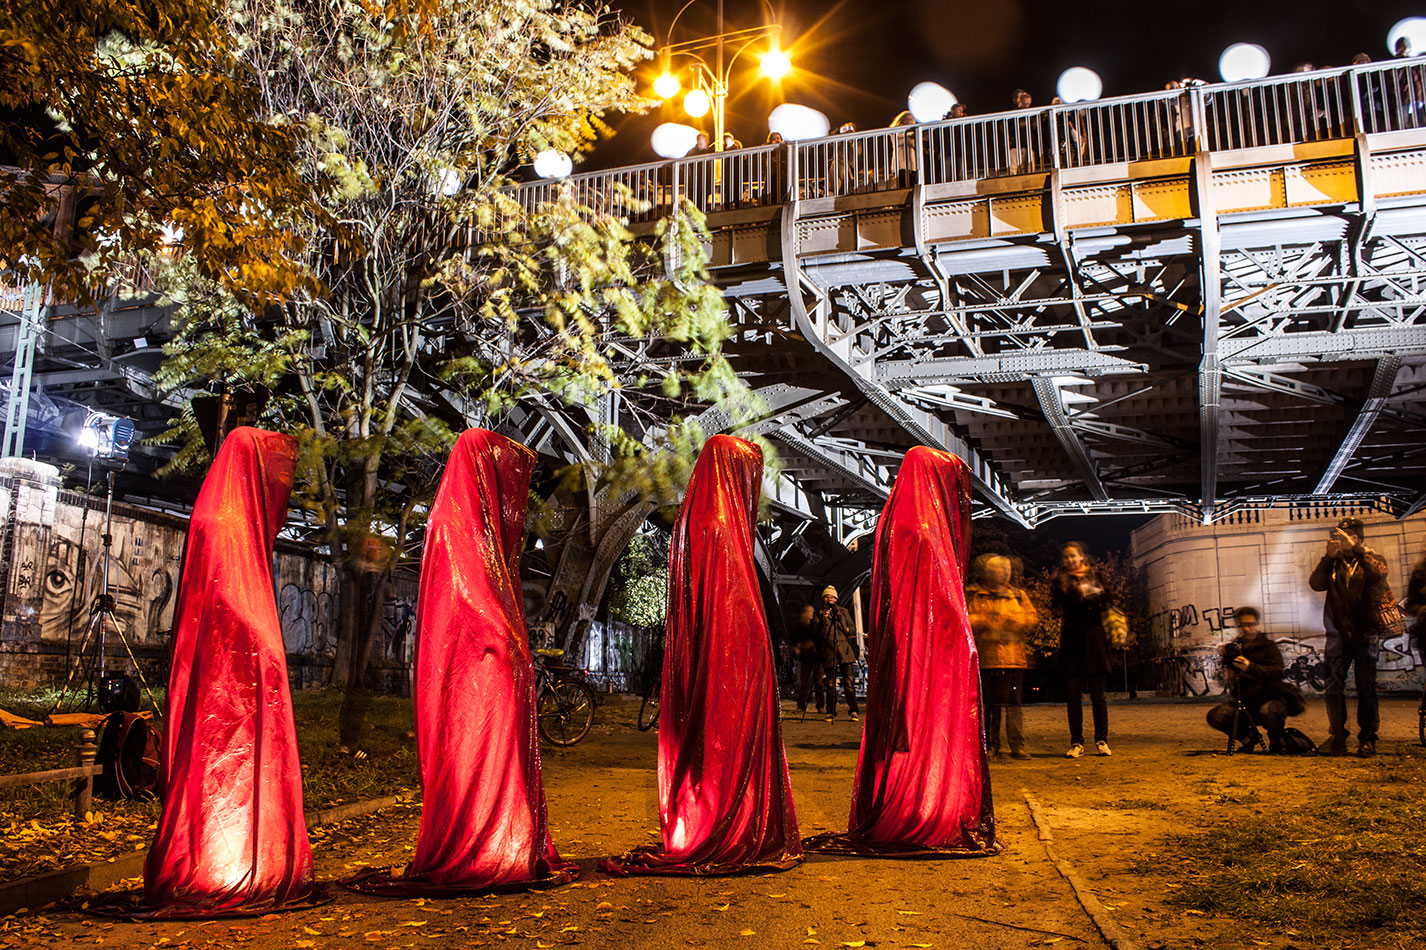 25-jears-wallfall-berlin-germany-contemporary-fine-art-show-arts-design-guardians-of-time-manfred-kili-kielnhofer-4325 - Kopie